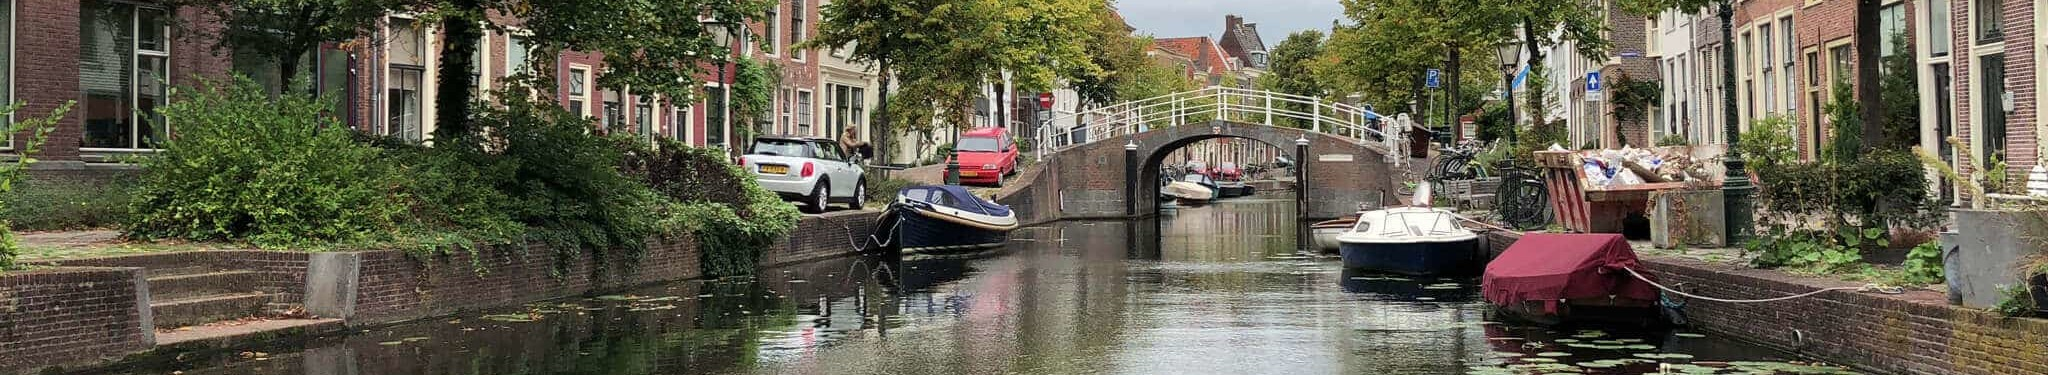 Best places to visit in Holland include Leiden